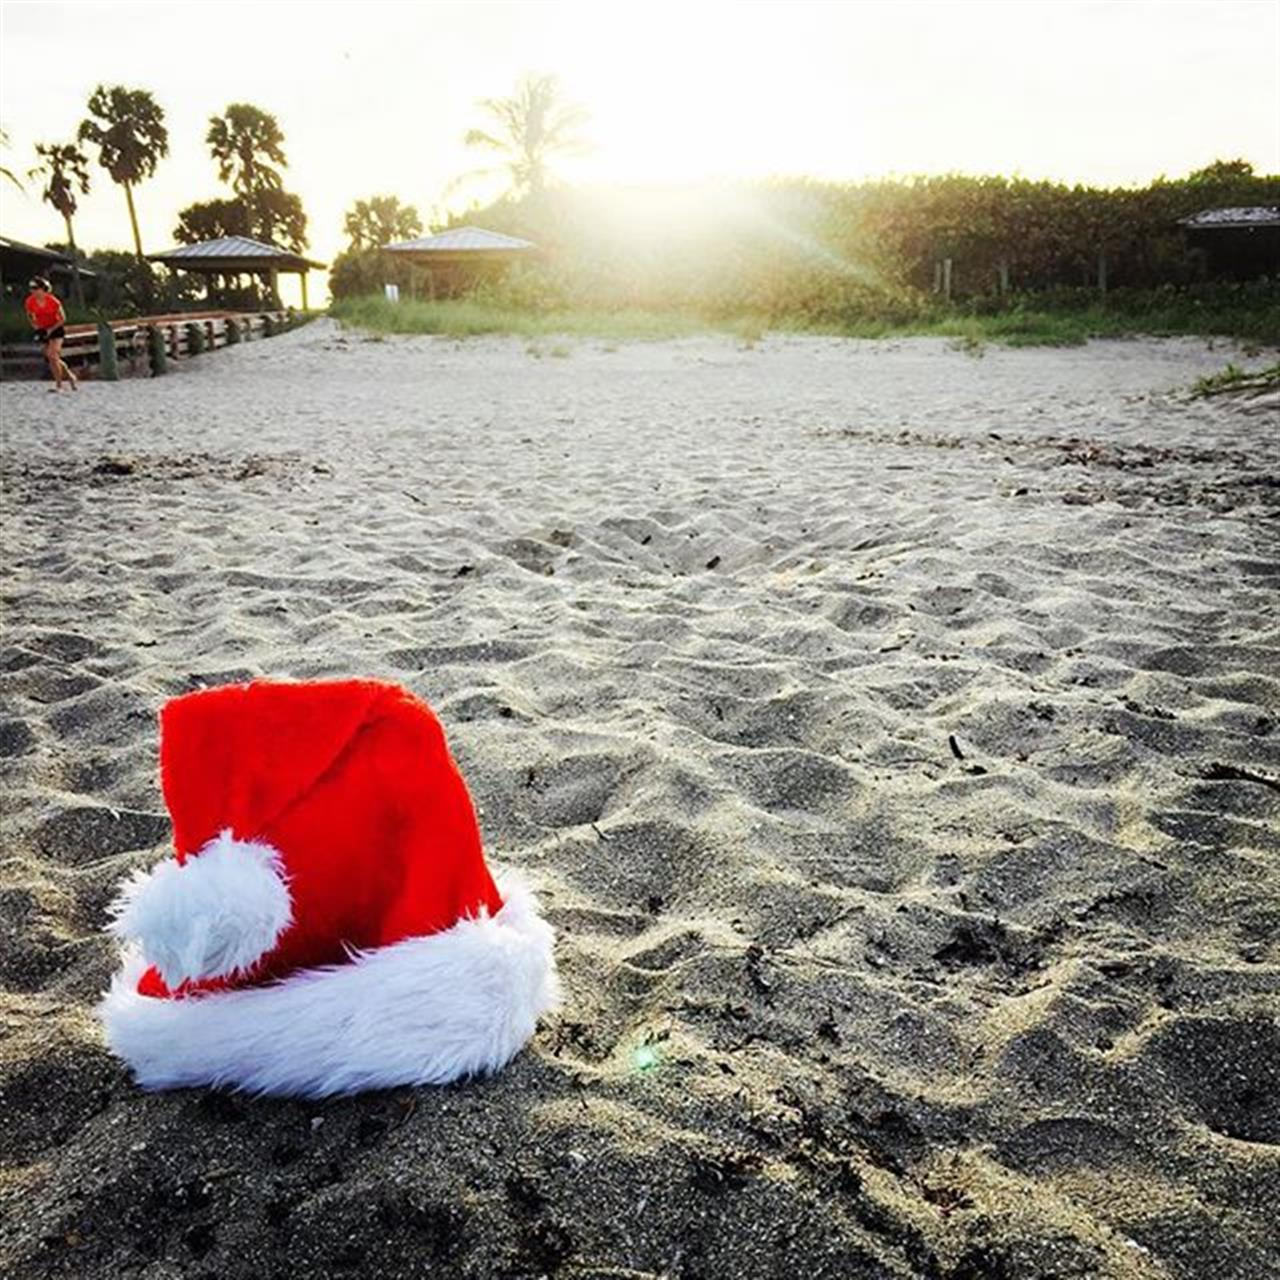 Santa has  got his toes in the water, his ass in the sand and cold beer in his hand #halstead  #exploreyourhood  #theperfectplace  #leadingrelocal